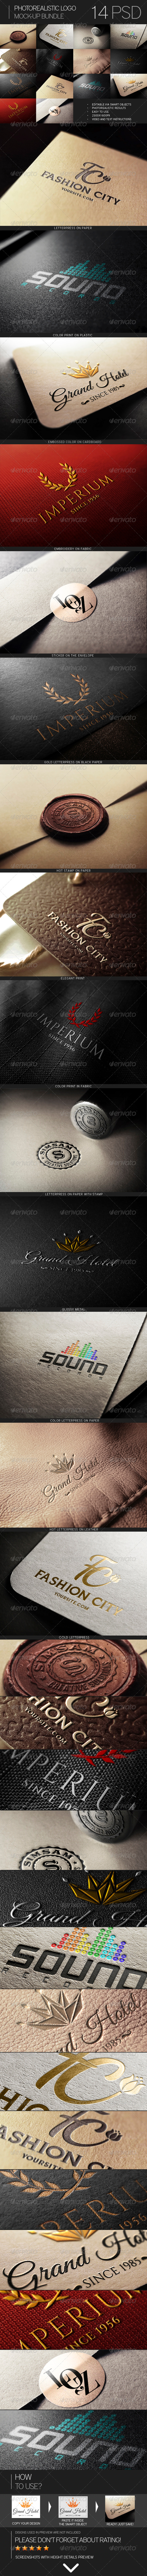 Graphicriver | Photorealistic Logo Mock-Up Bundle Free Download free download Graphicriver | Photorealistic Logo Mock-Up Bundle Free Download nulled Graphicriver | Photorealistic Logo Mock-Up Bundle Free Download